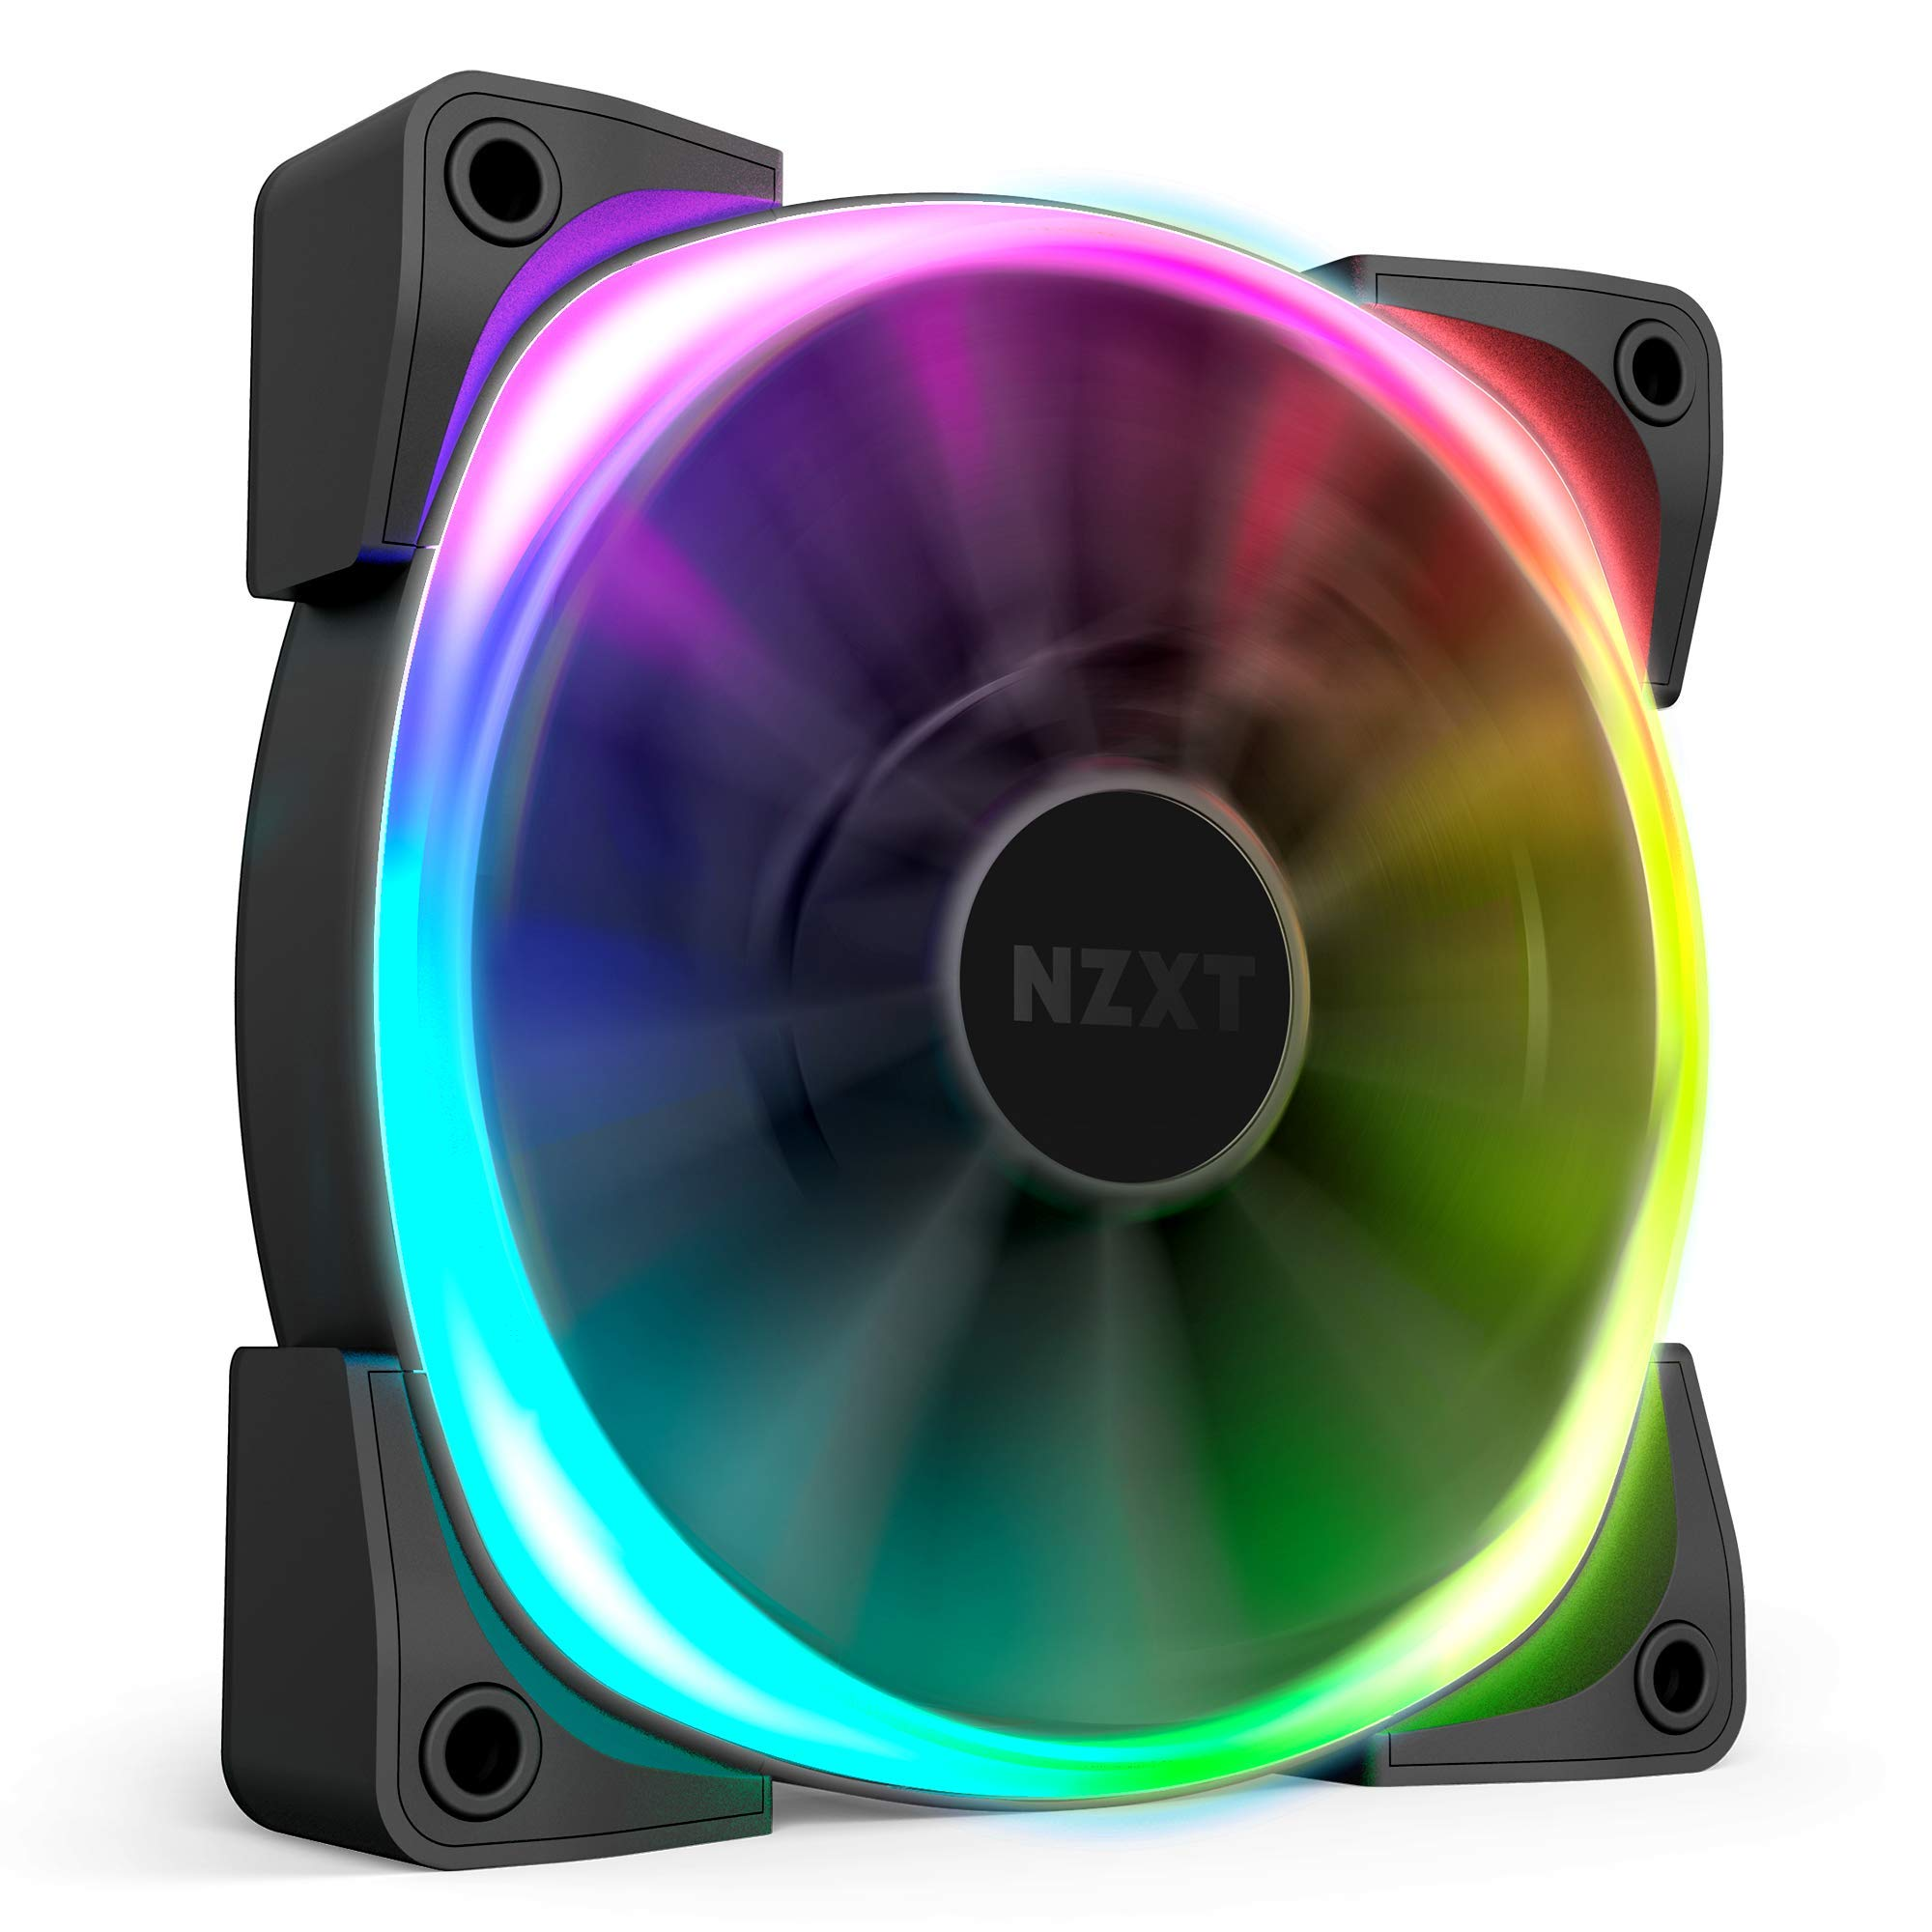 Nzxt AER RGB 2 - 120mm - Advanced Lighting Customizations - Winglet Tips - Fluid Dynamic Bearing - LED RGB PWM Fan for Hue 2 - Single (Hue2 Lighting Controller not included) by NZXT